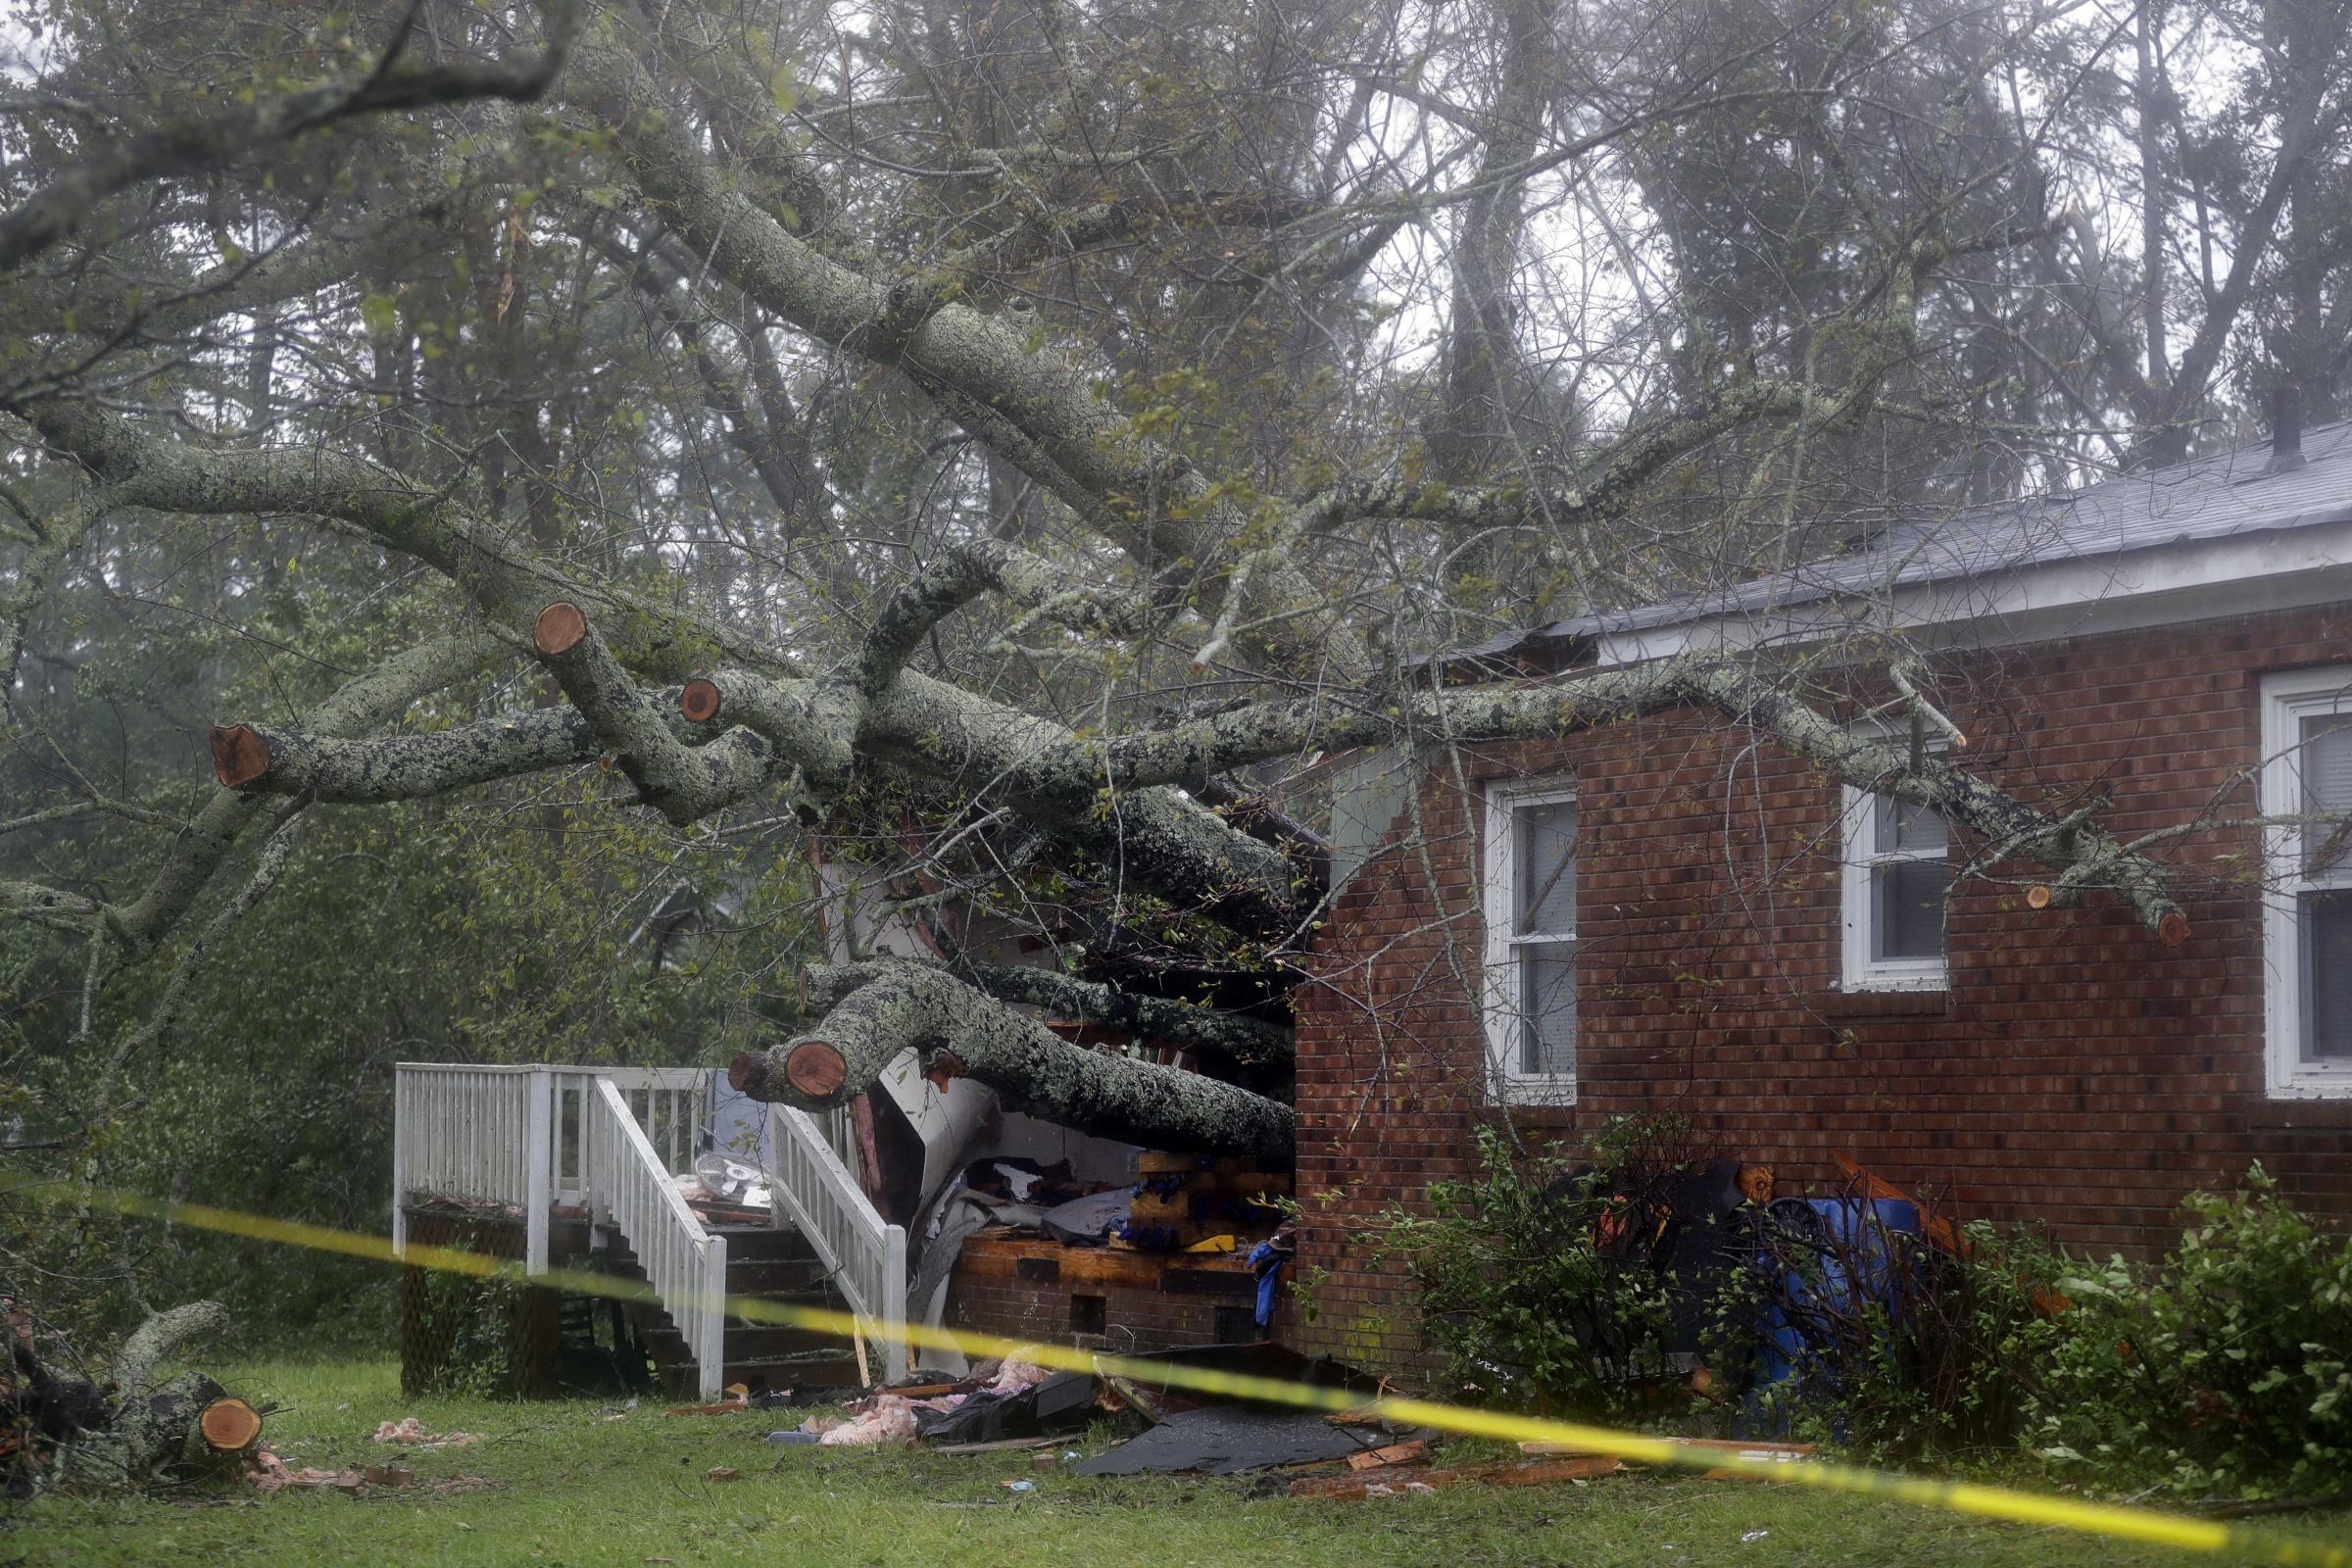 Image result for A mother and her infant were killed in Wilmington when a tree fell on their home on Friday. Officials say the child's father was also transported to hospital for injuries Two men in their 70s were killed in Lenoir County. One was killed when connecting an electrical generator, and family members say another man was killed in a wind-related death when checking on dogs outside his property A woman died from cardiac arrest in the town of Hampstead after emergency responders had their route to her blocked by downed trees, a county official said